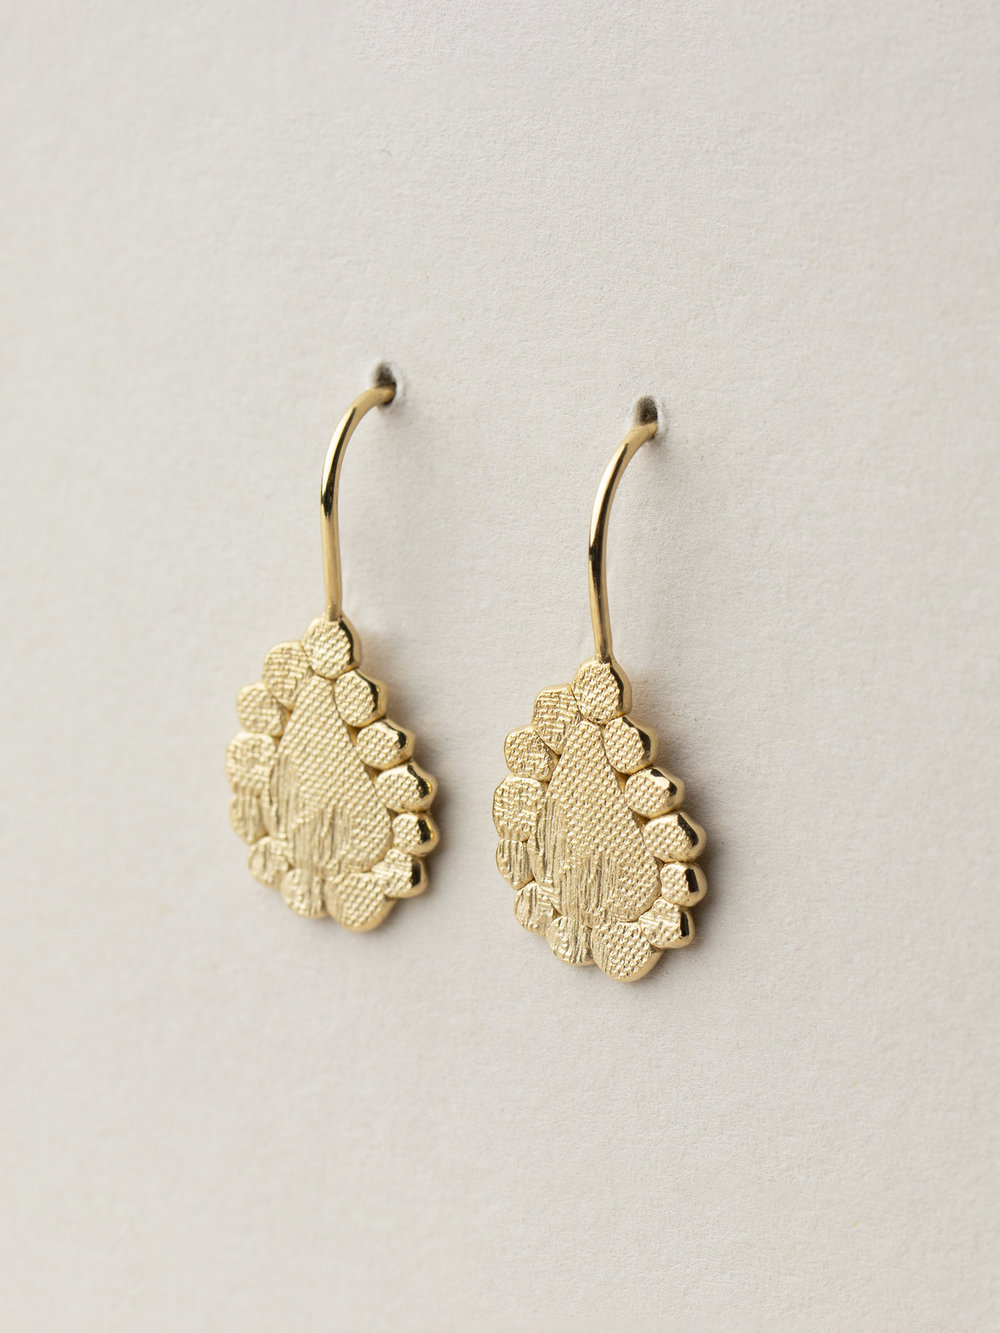 Amia-Tropfen-Ohrhänger in 585 Gelbgold  Amia, dropshaped earrings in 14kt gold